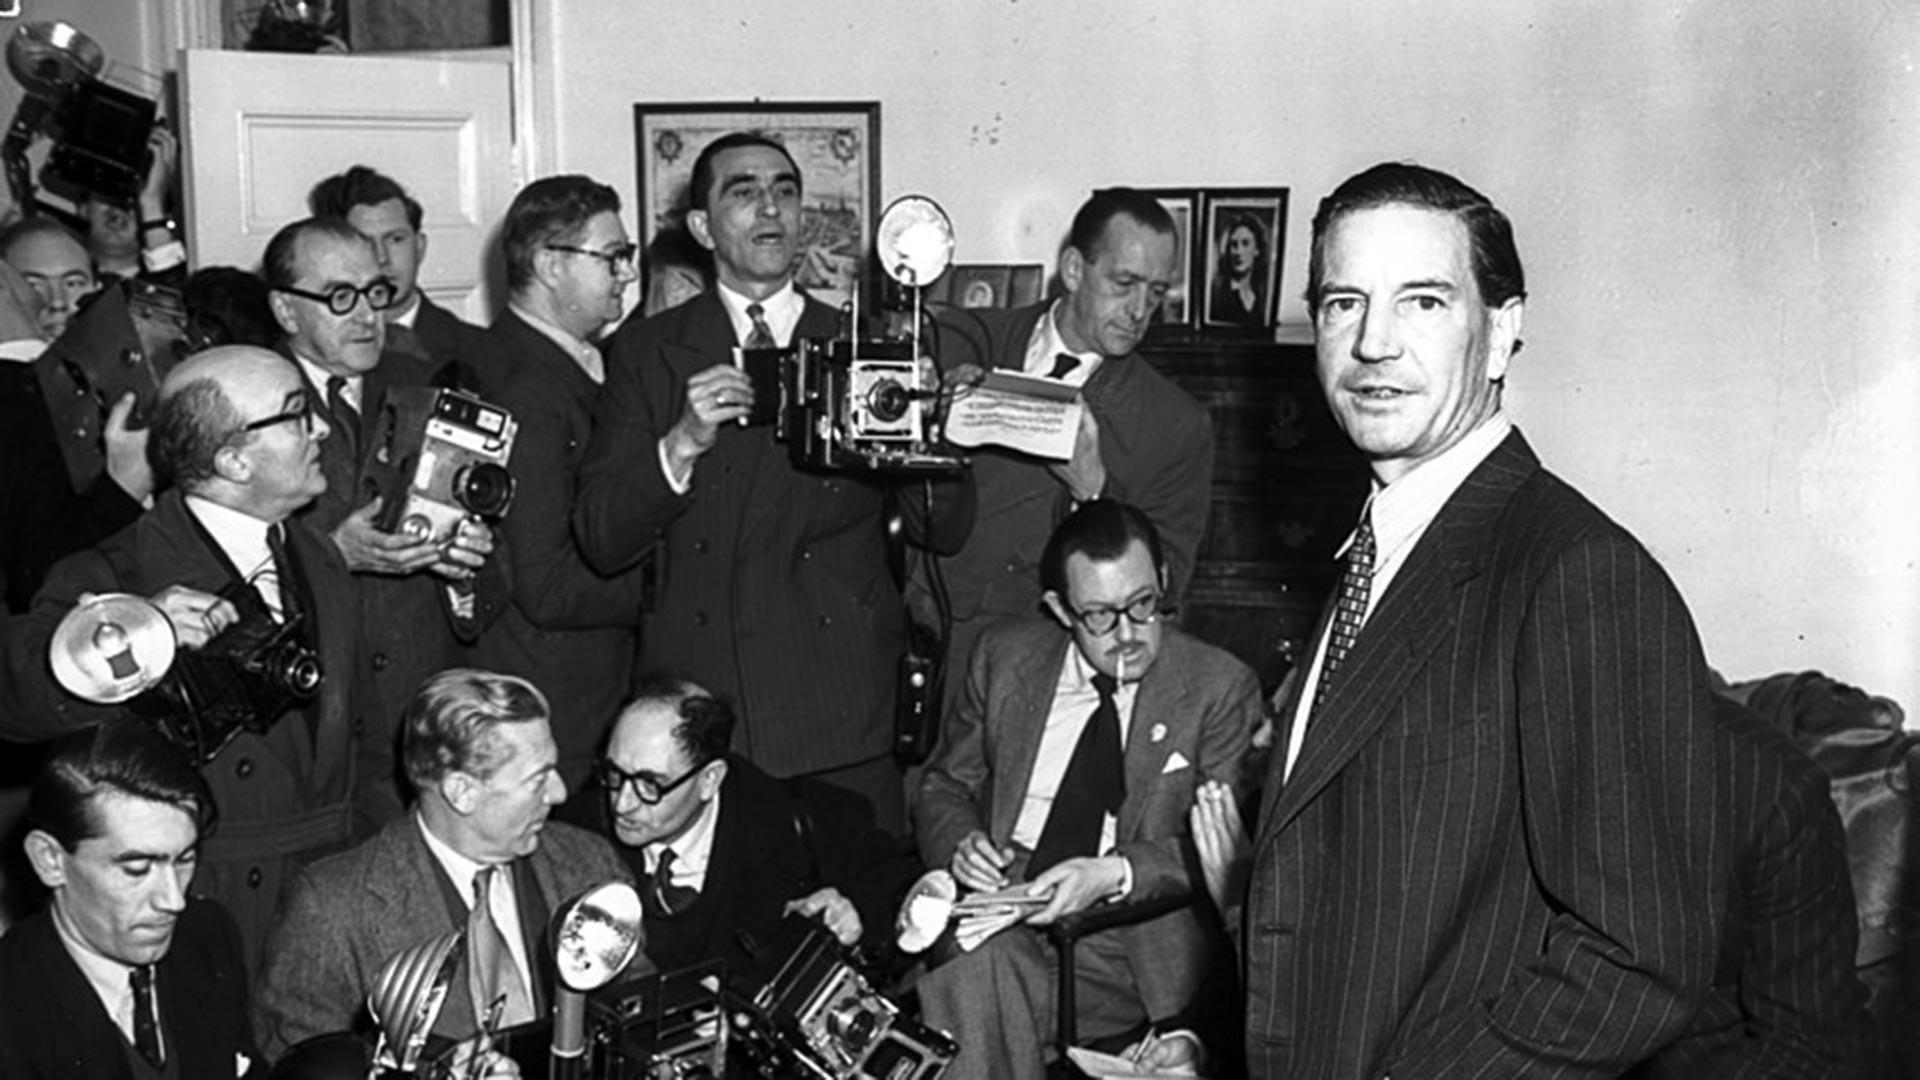 Kim Philby was the best-known member of the Cambridge Five Soviet spy ring in the UK.